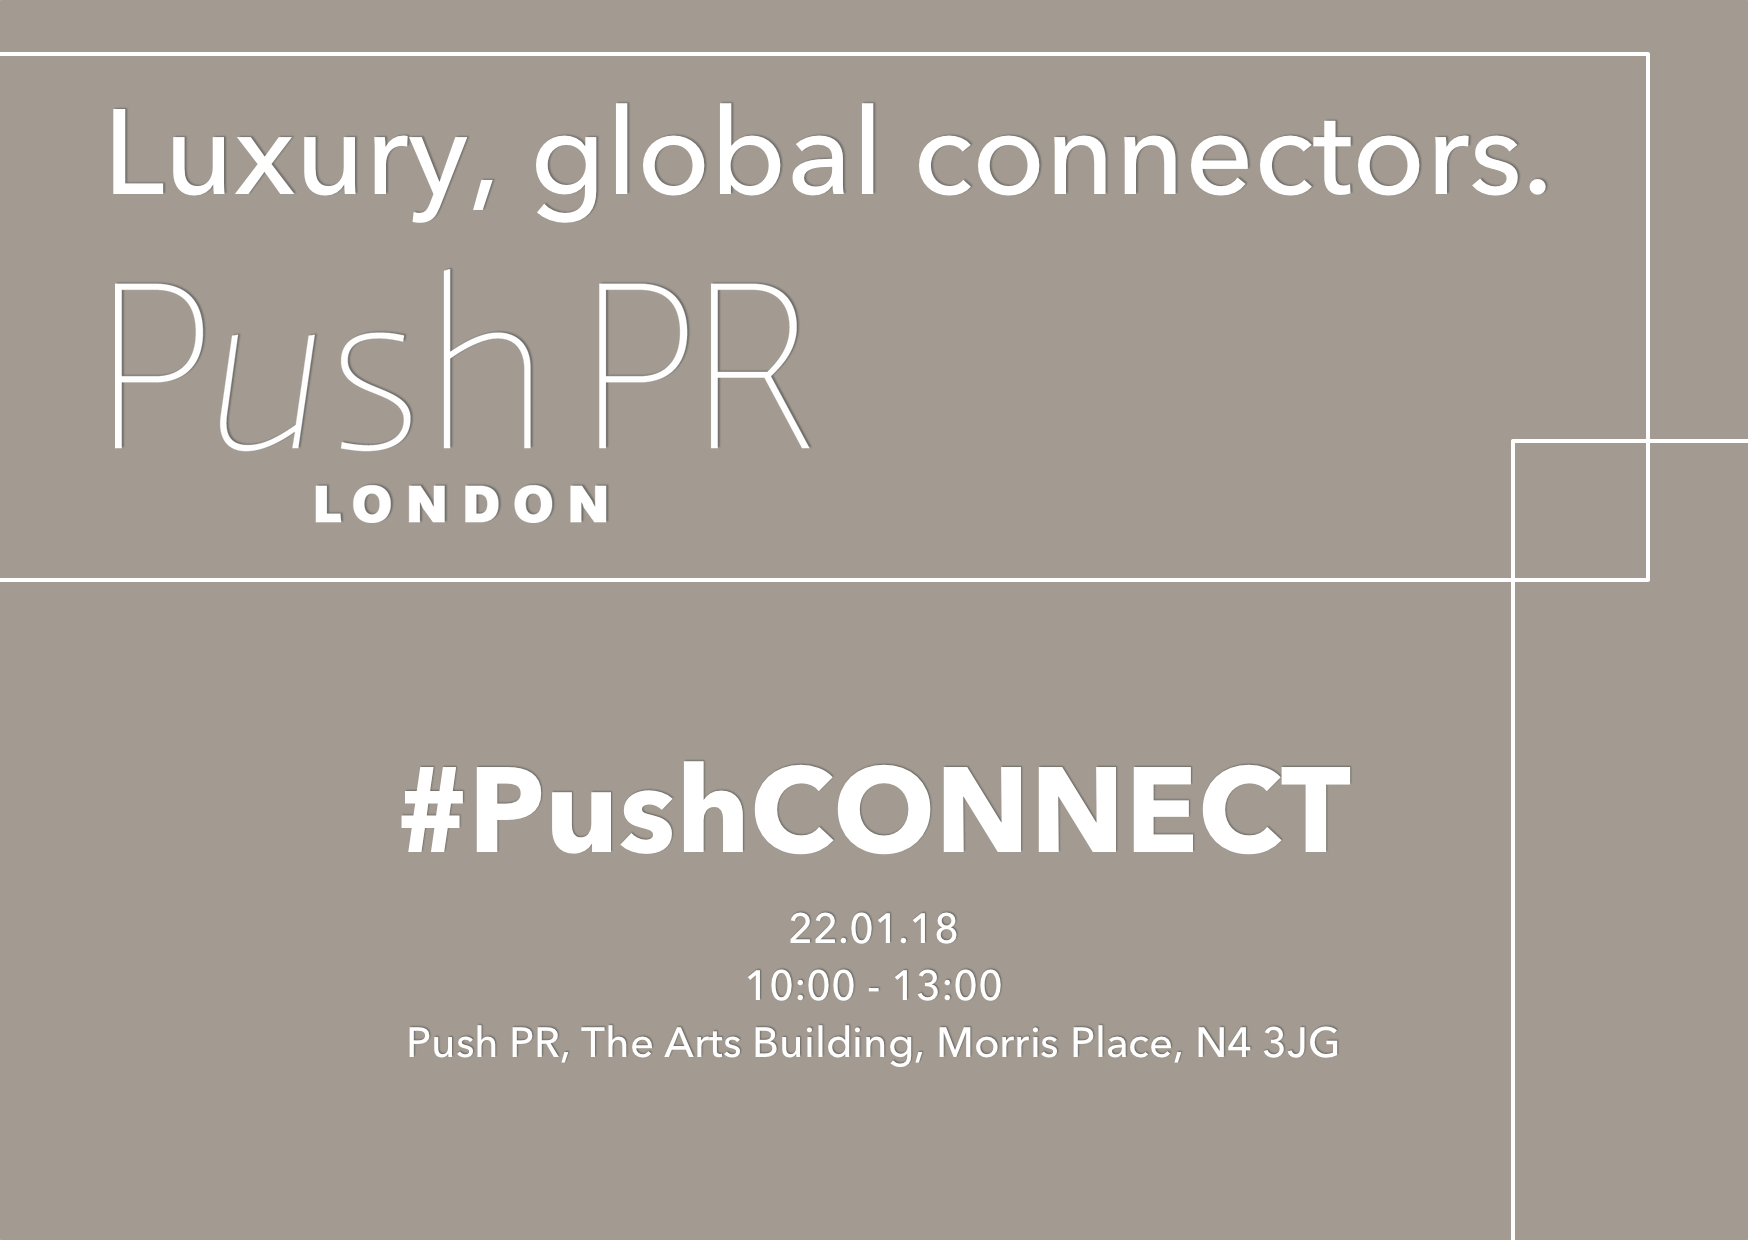 PushCONNECT Morning 22nd Jan